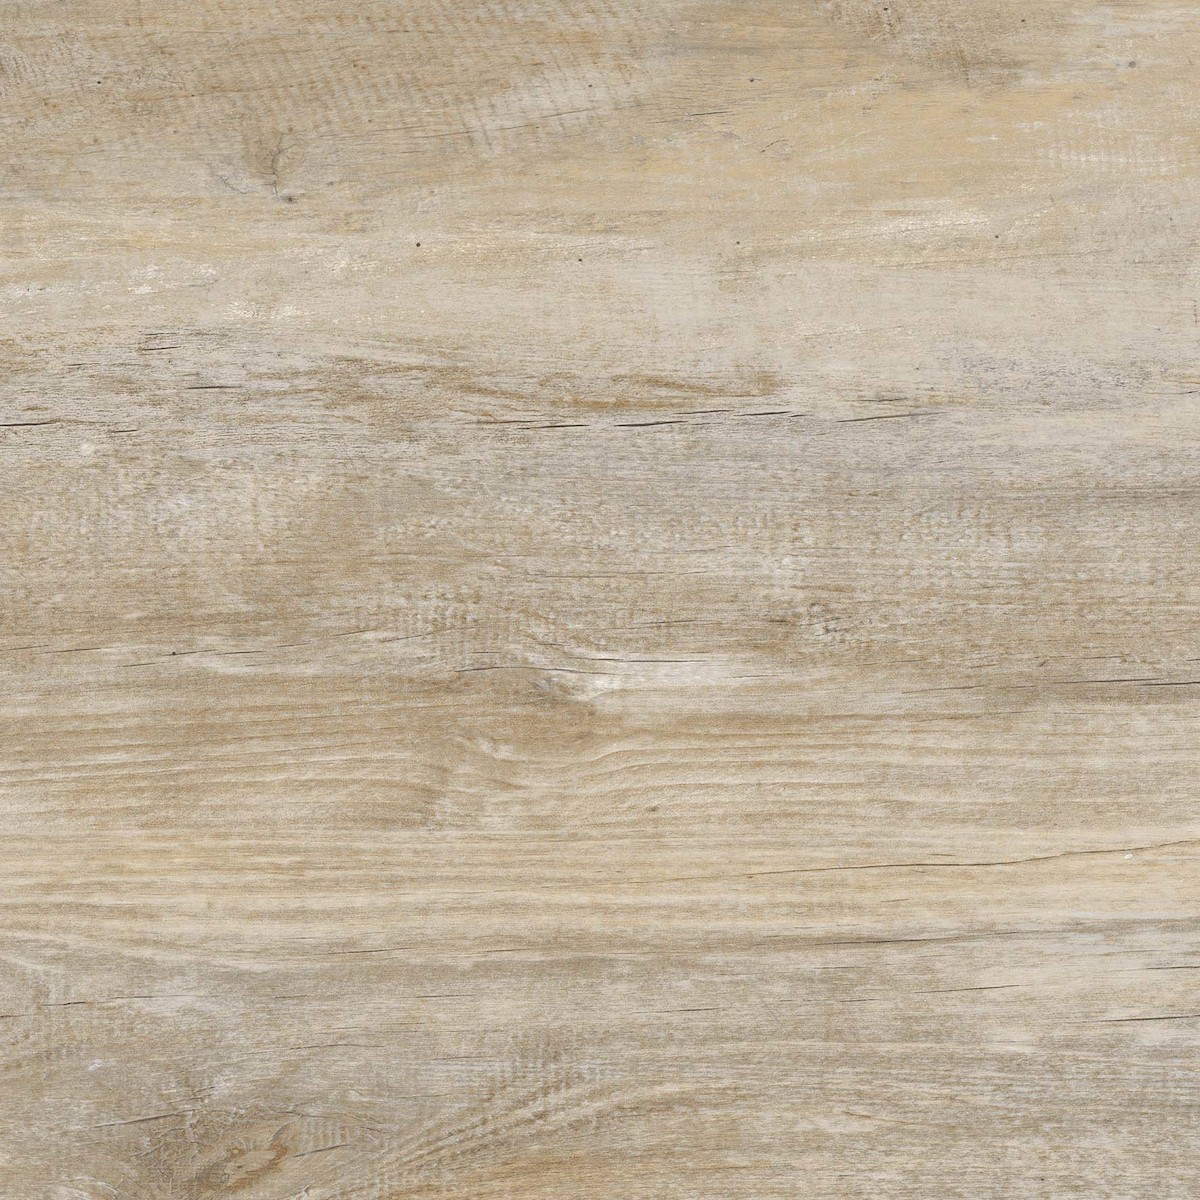 Dlažba Sintesi Timber S tortora 60x60x2 cm mat 20TIMBER11749R